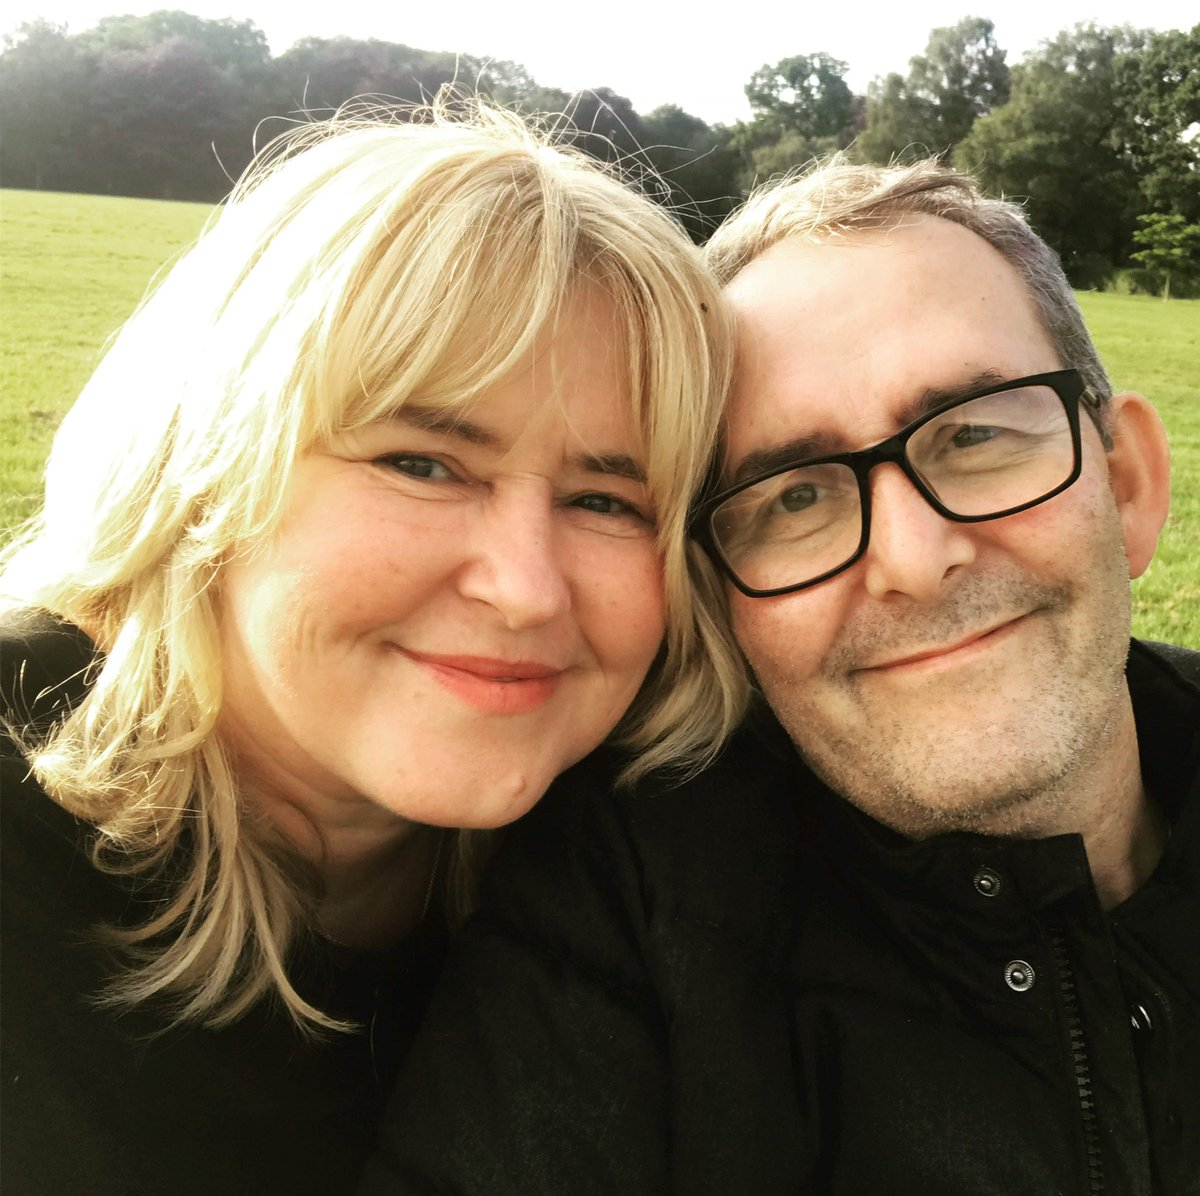 My beloved husband Darren has spent two years waiting on the organ transplant list for a new heart. We try to stay positive and make the best out of everything. Its a waiting game but we are just asking for more people to discuss #OrganDonation with their family.